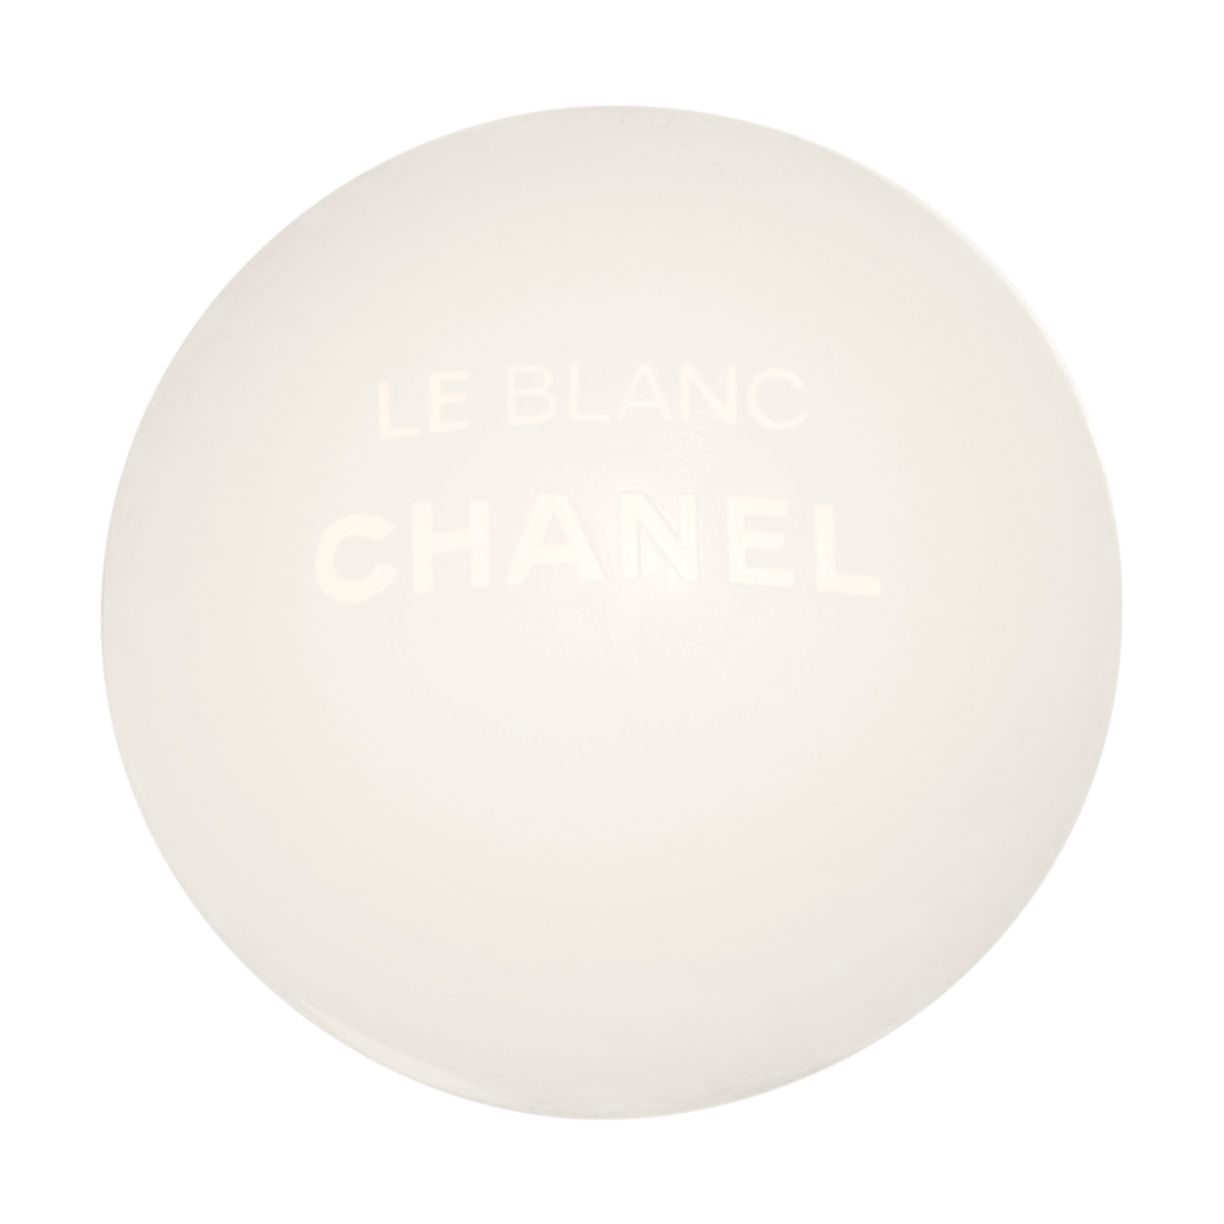 LE BLANC BRIGHTENING PEARL SOAP MAKEUP REMOVER-CLEANSER